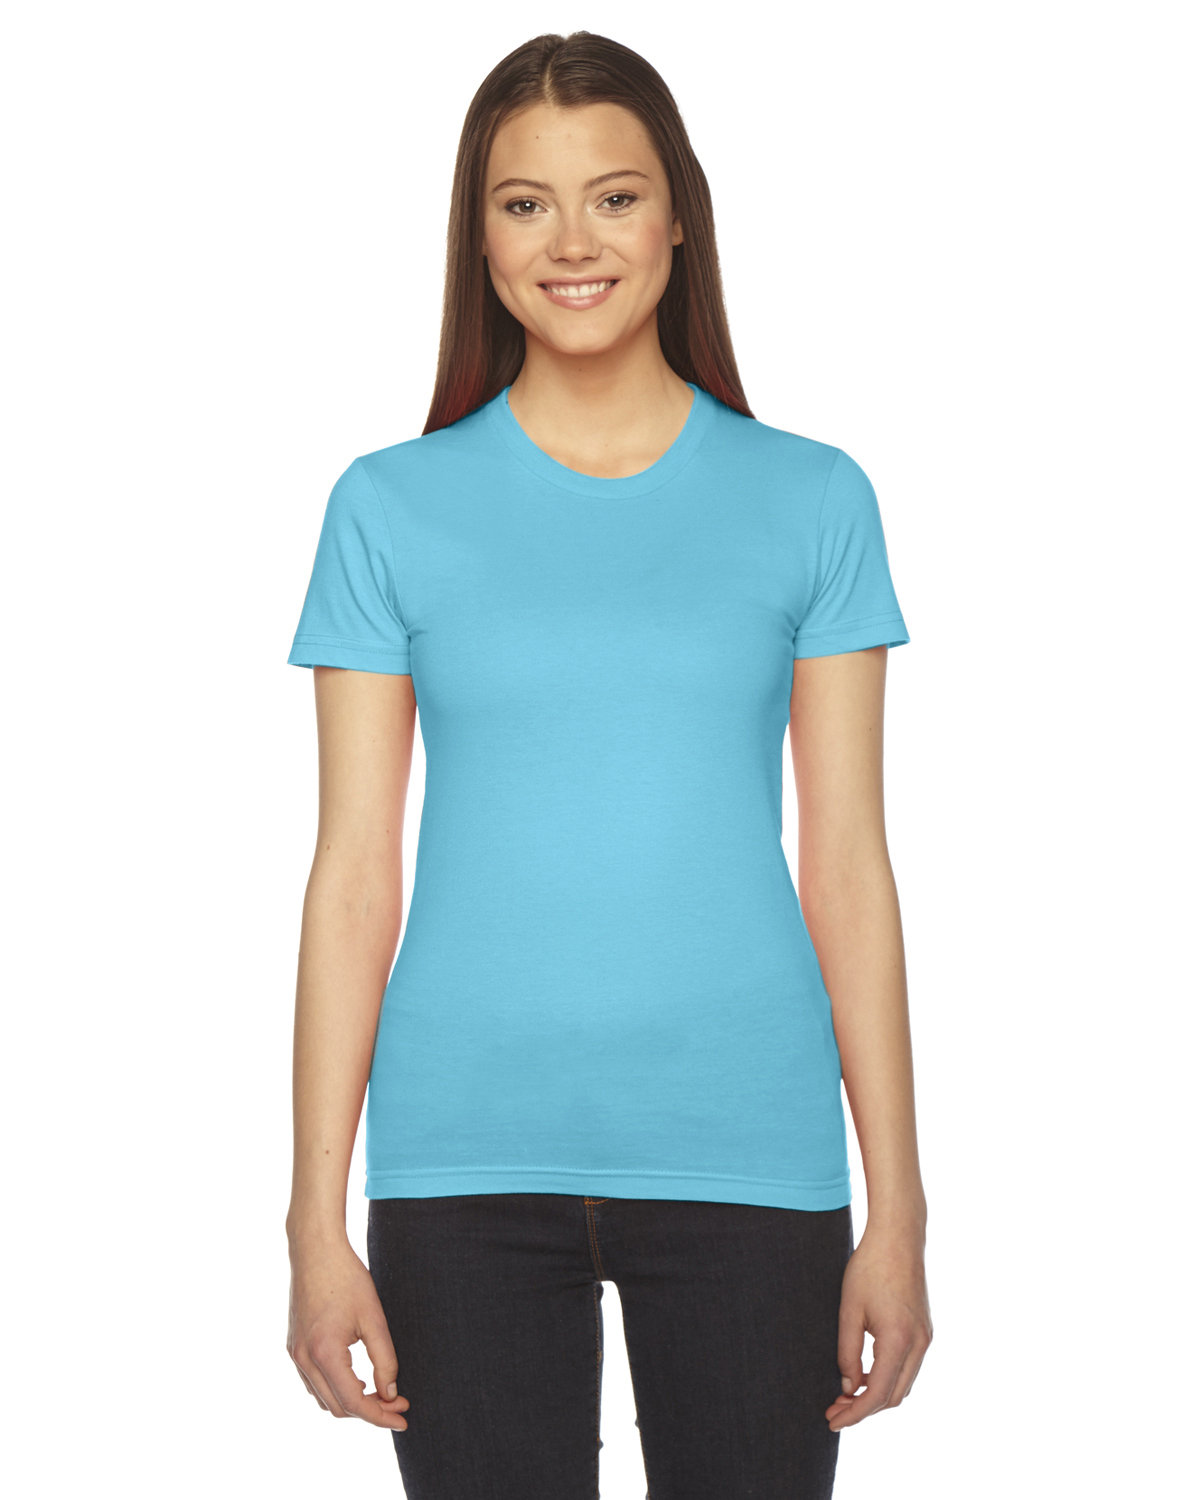 American Apparel Ladies' Fine Jersey Short-Sleeve T-Shirt TURQUOISE